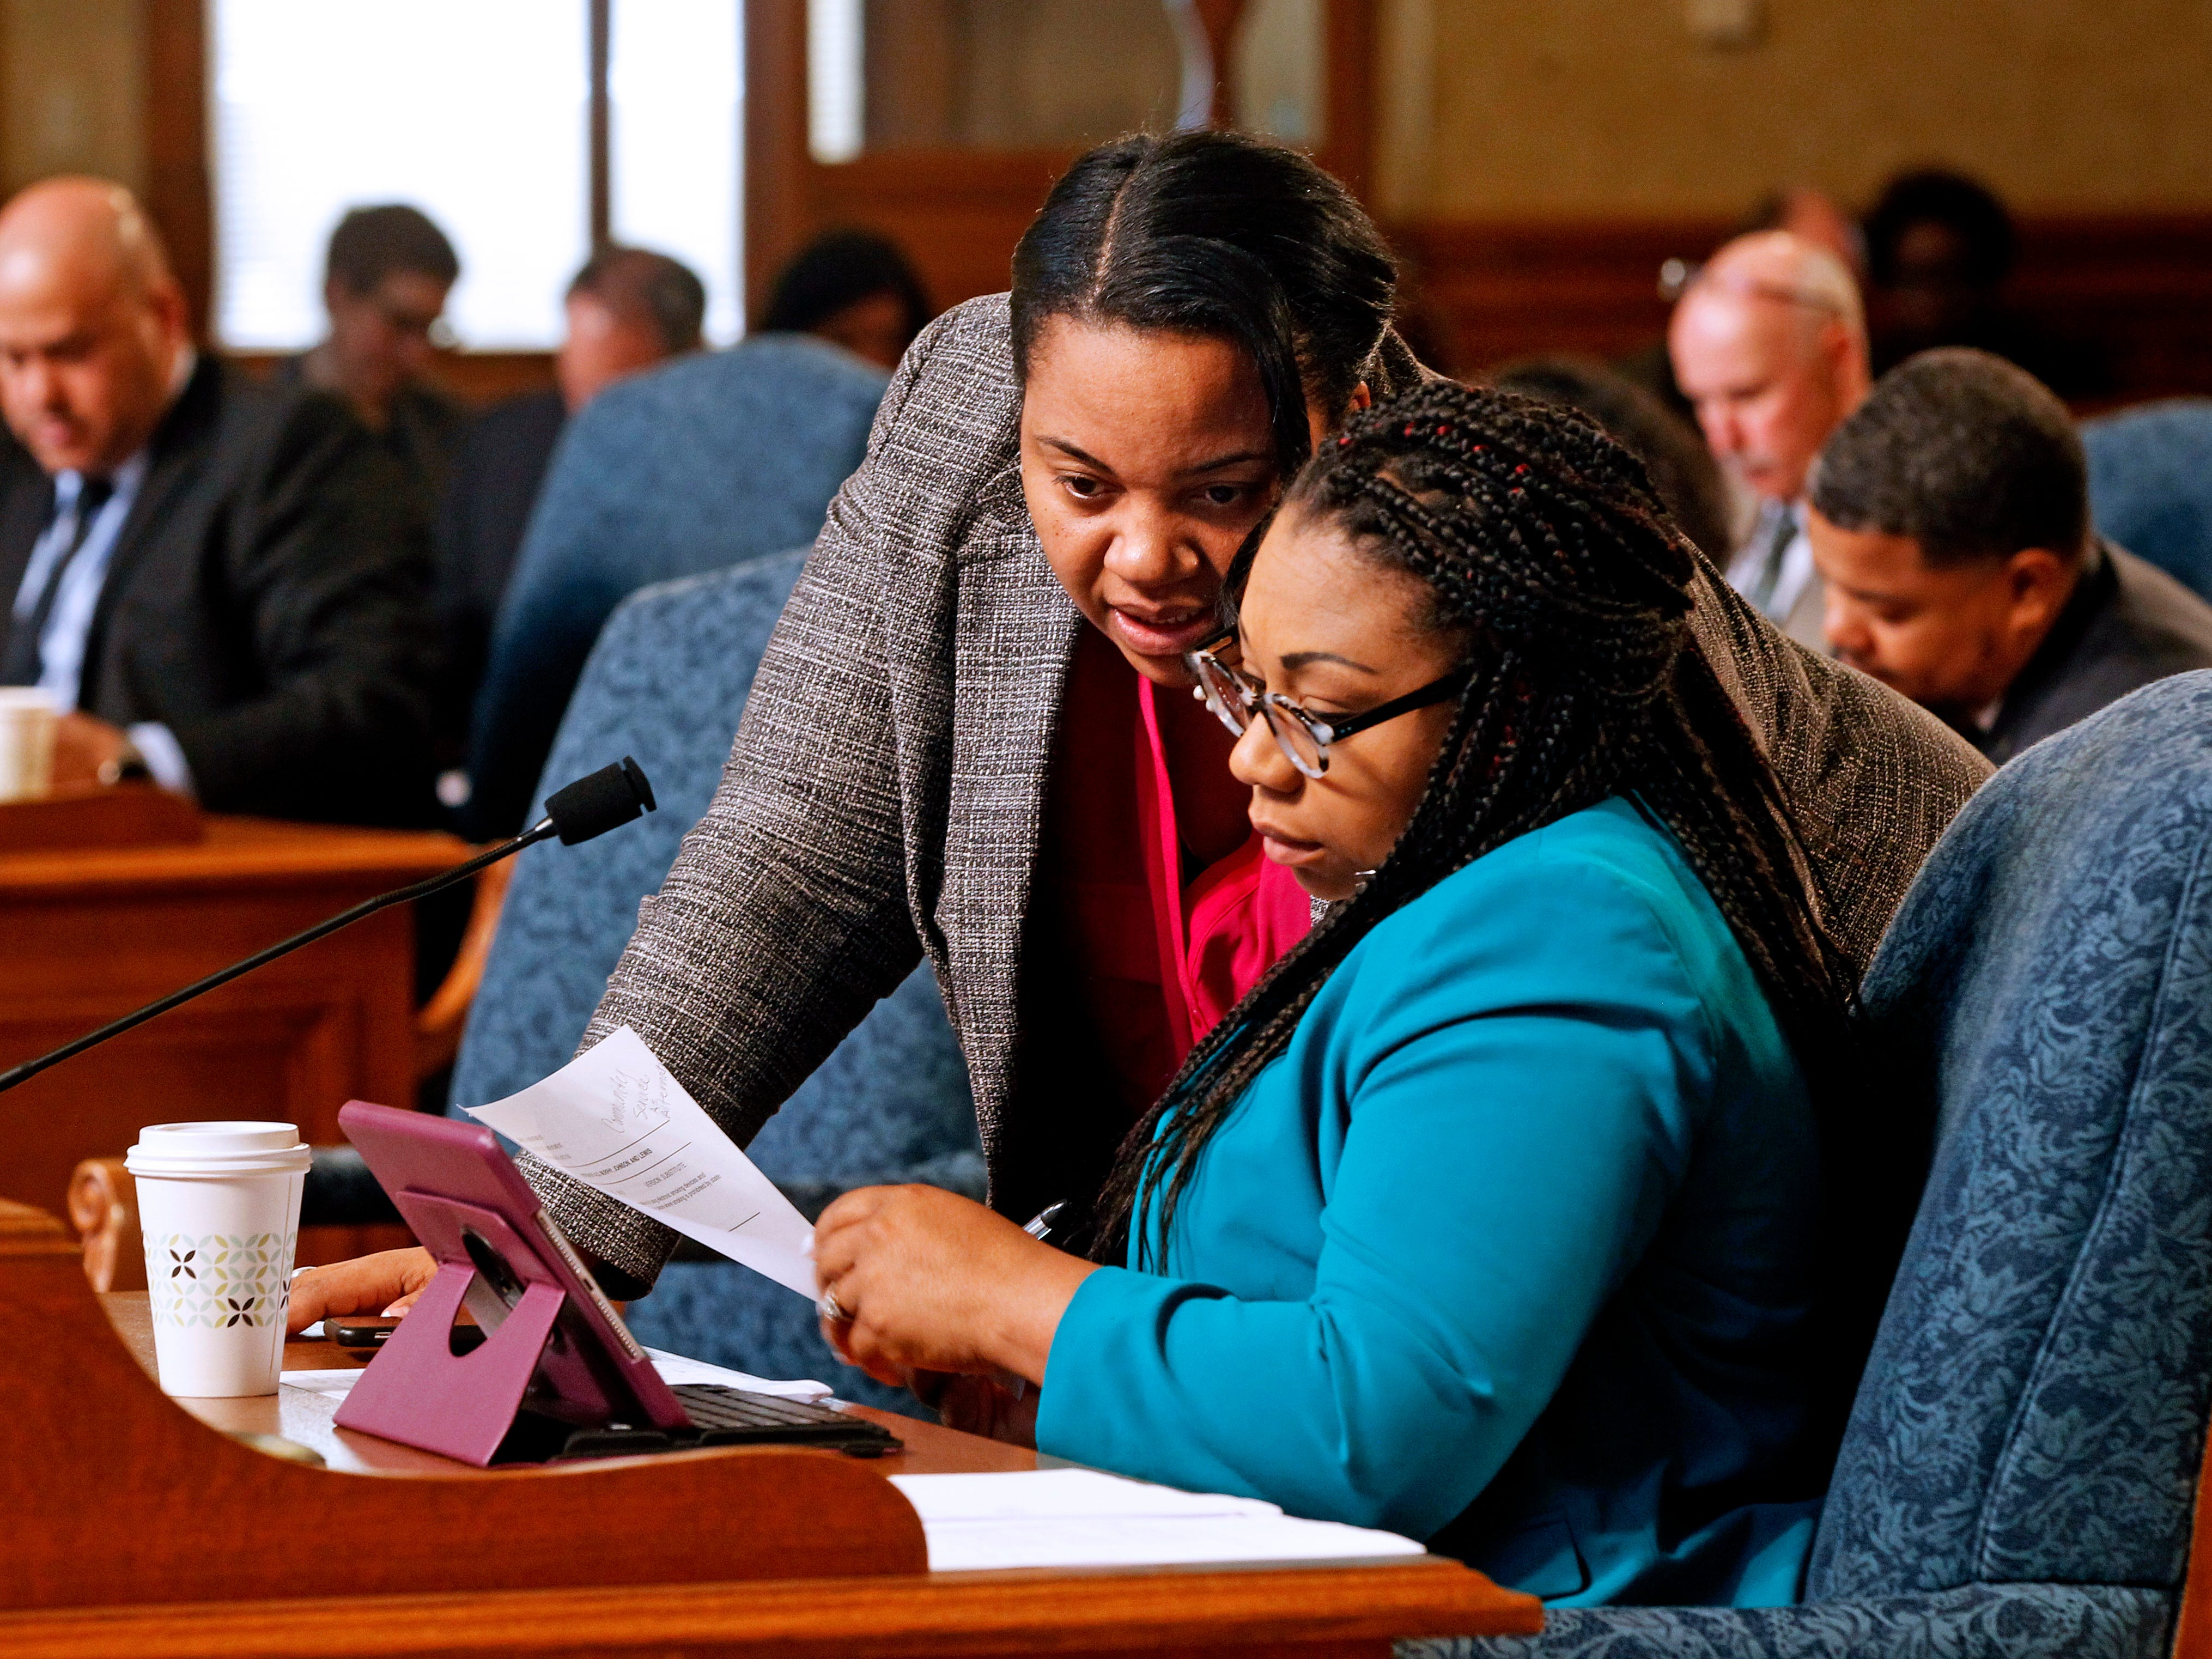 Milwaukee Alderwomen Milele Coggs, left, and Chantia Lewis talk during a Common Council meeting at Milwaukee City Hall.